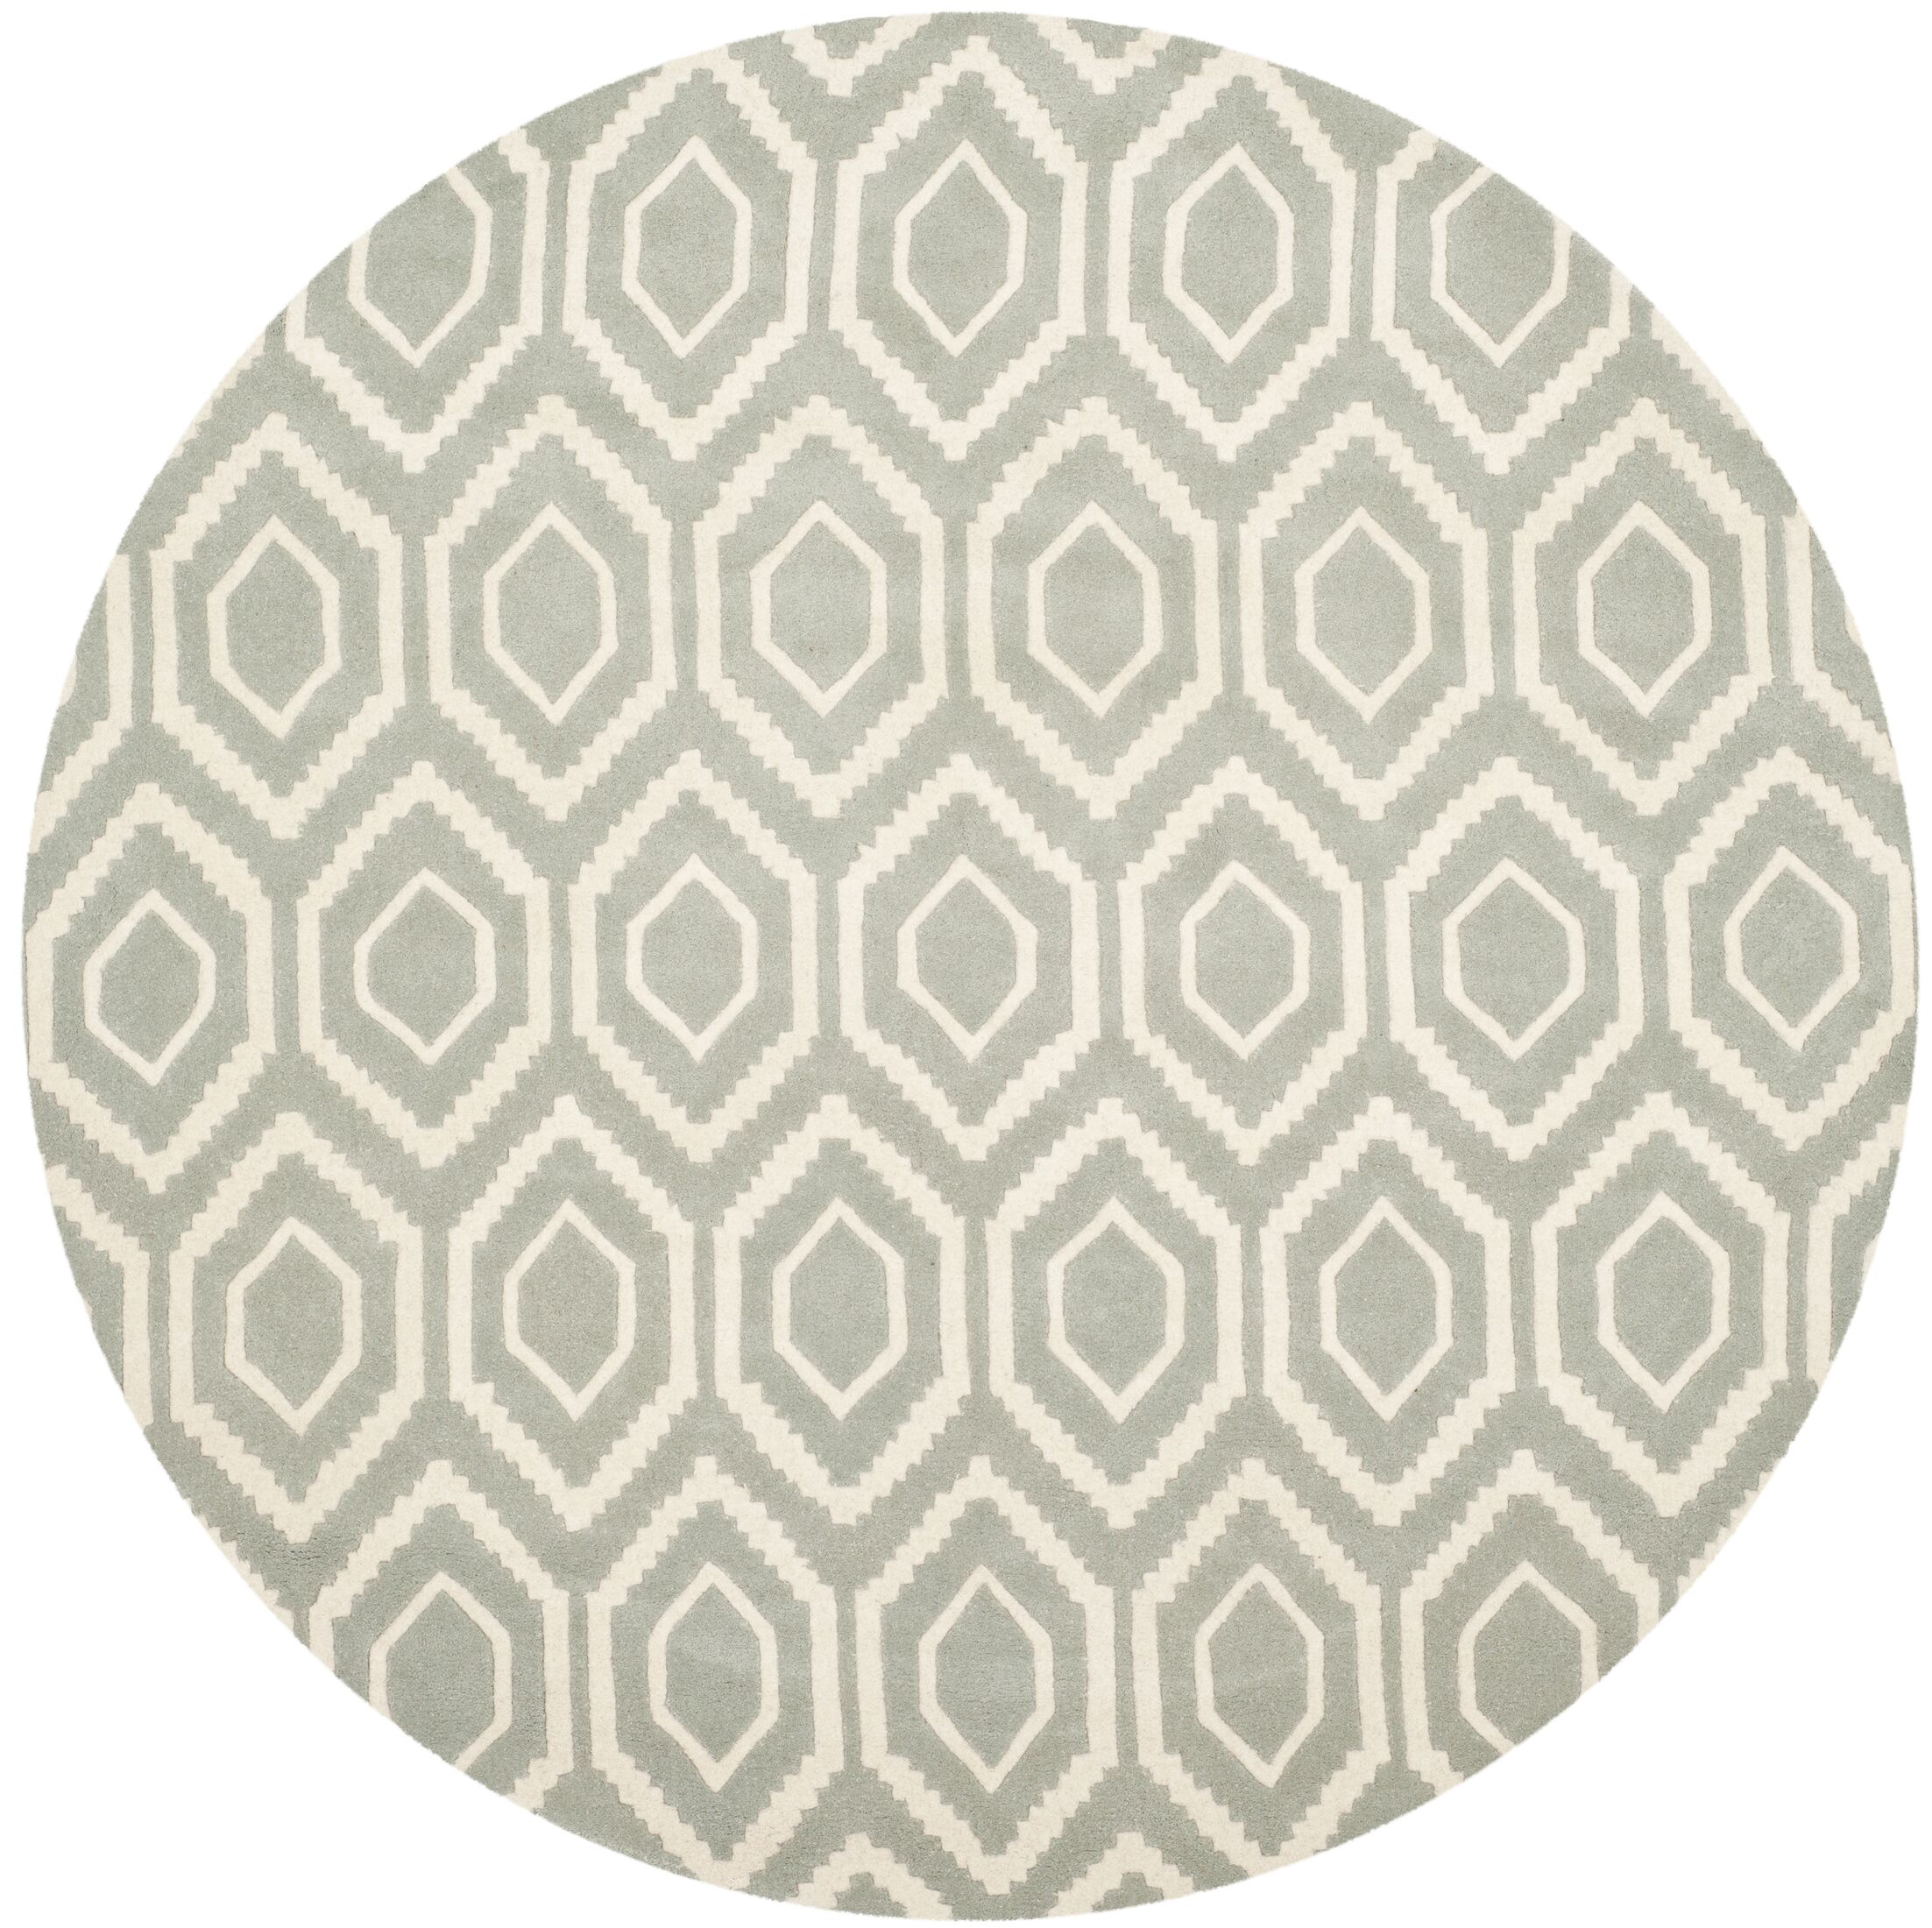 Wilkin Hand-Tufted Gray/Ivory Area Rug Rug Size: Round 7'